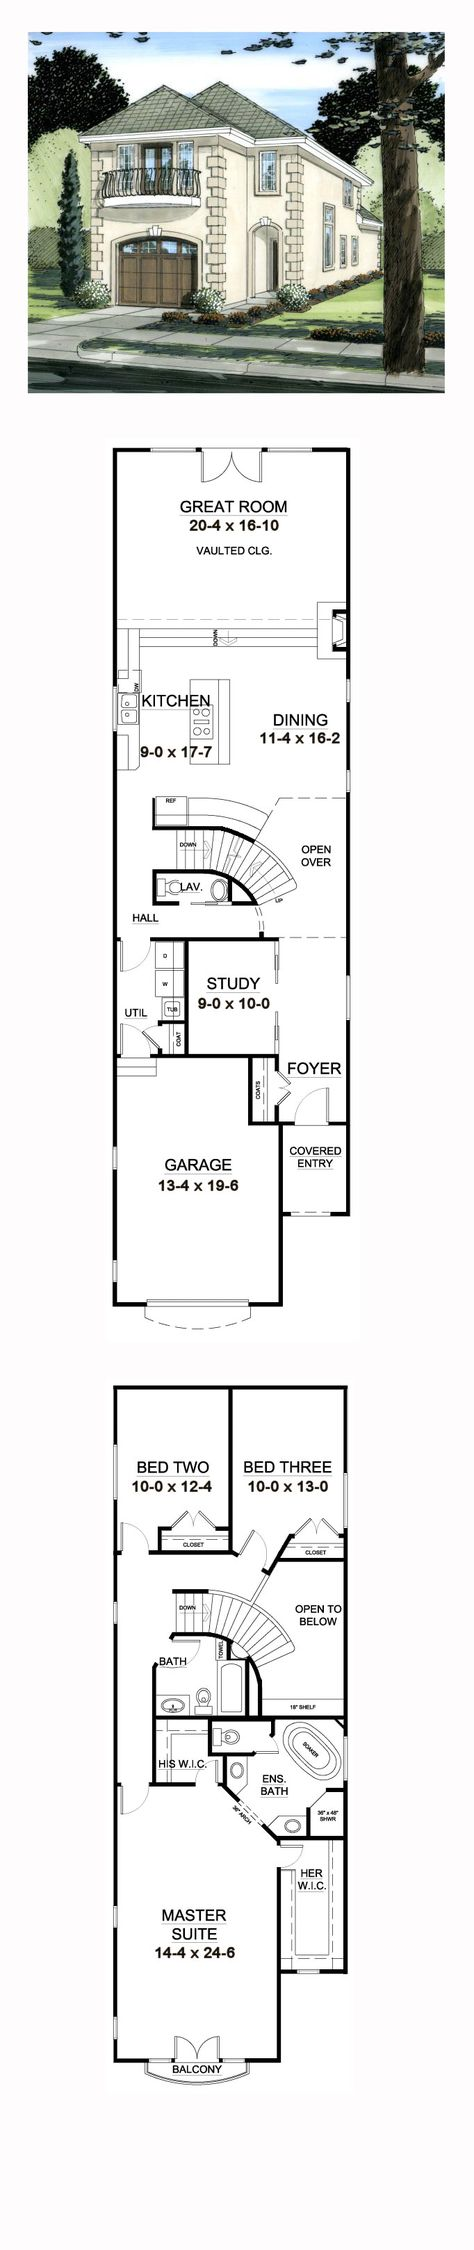 Narrow Lot House Plan 9997   Total Living Area: 2321 sq. ft., 3 bedrooms and 2.5 bathrooms. #narrowlot